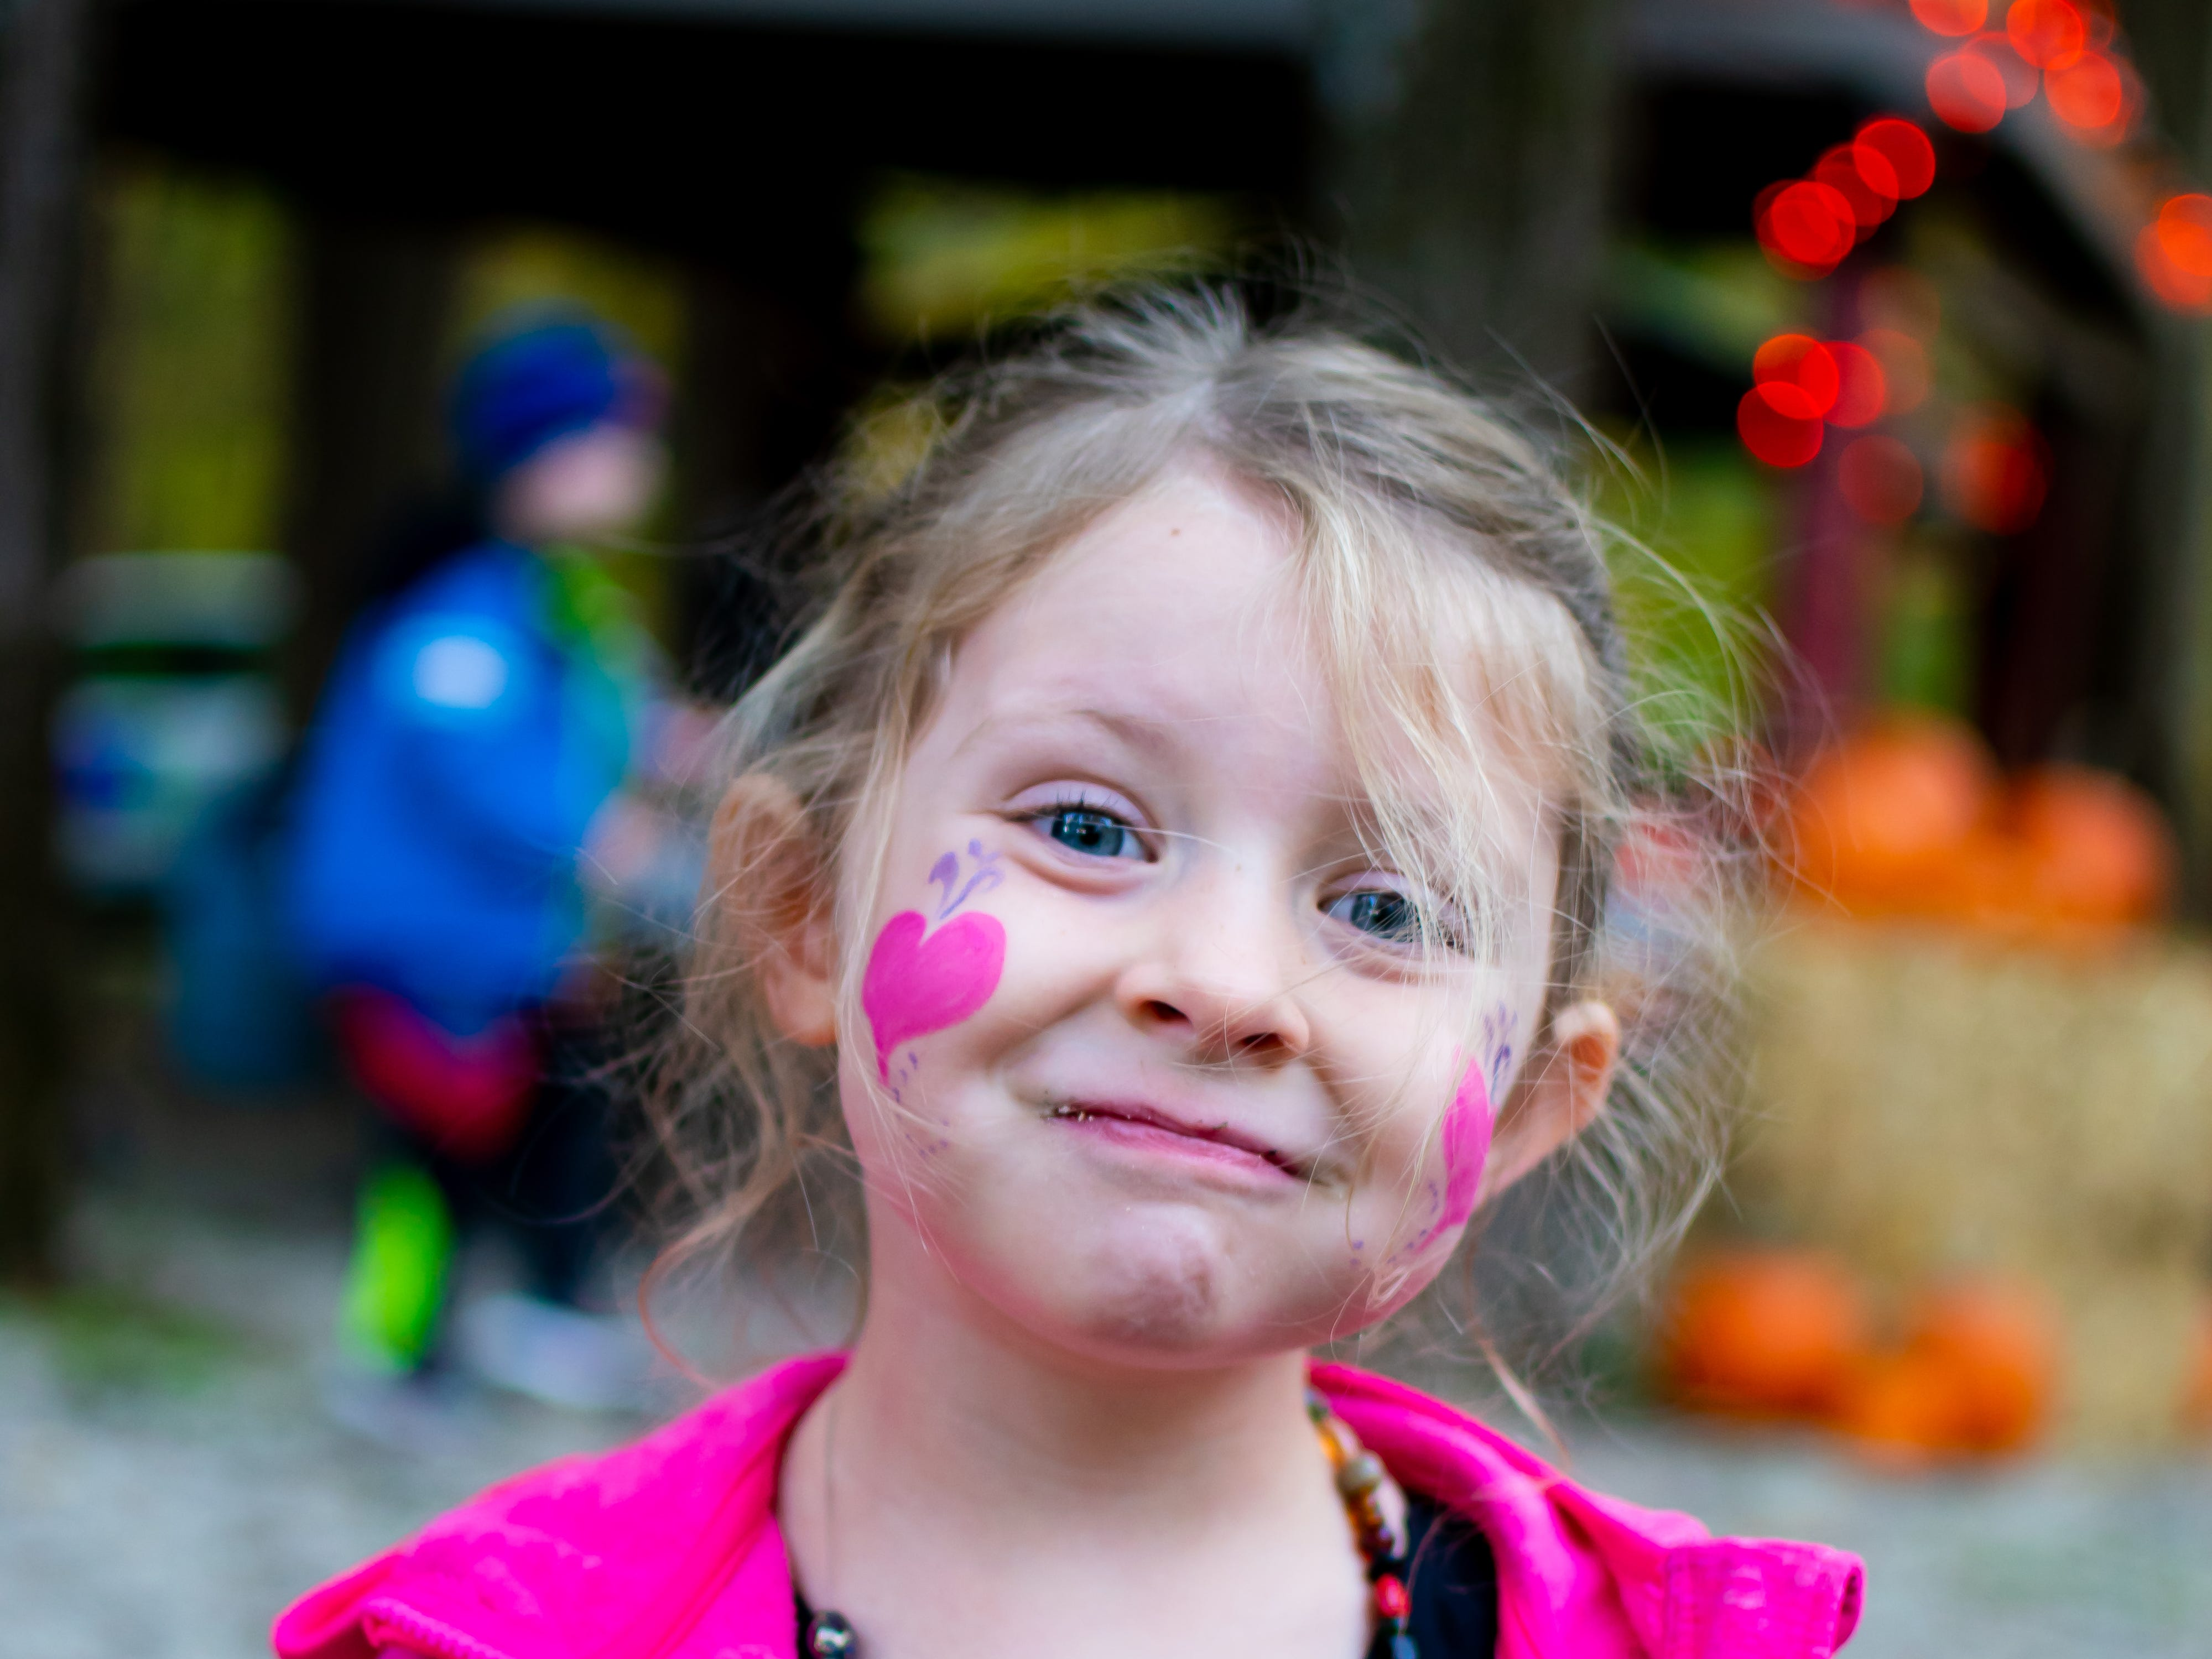 Leona Boaz, 3, of Waukee got her face painted on Tuesday, Oct. 16, 2018 for the Waukee Area Chamber of Commerce fall after hours party at Timberline Campground in Waukee.